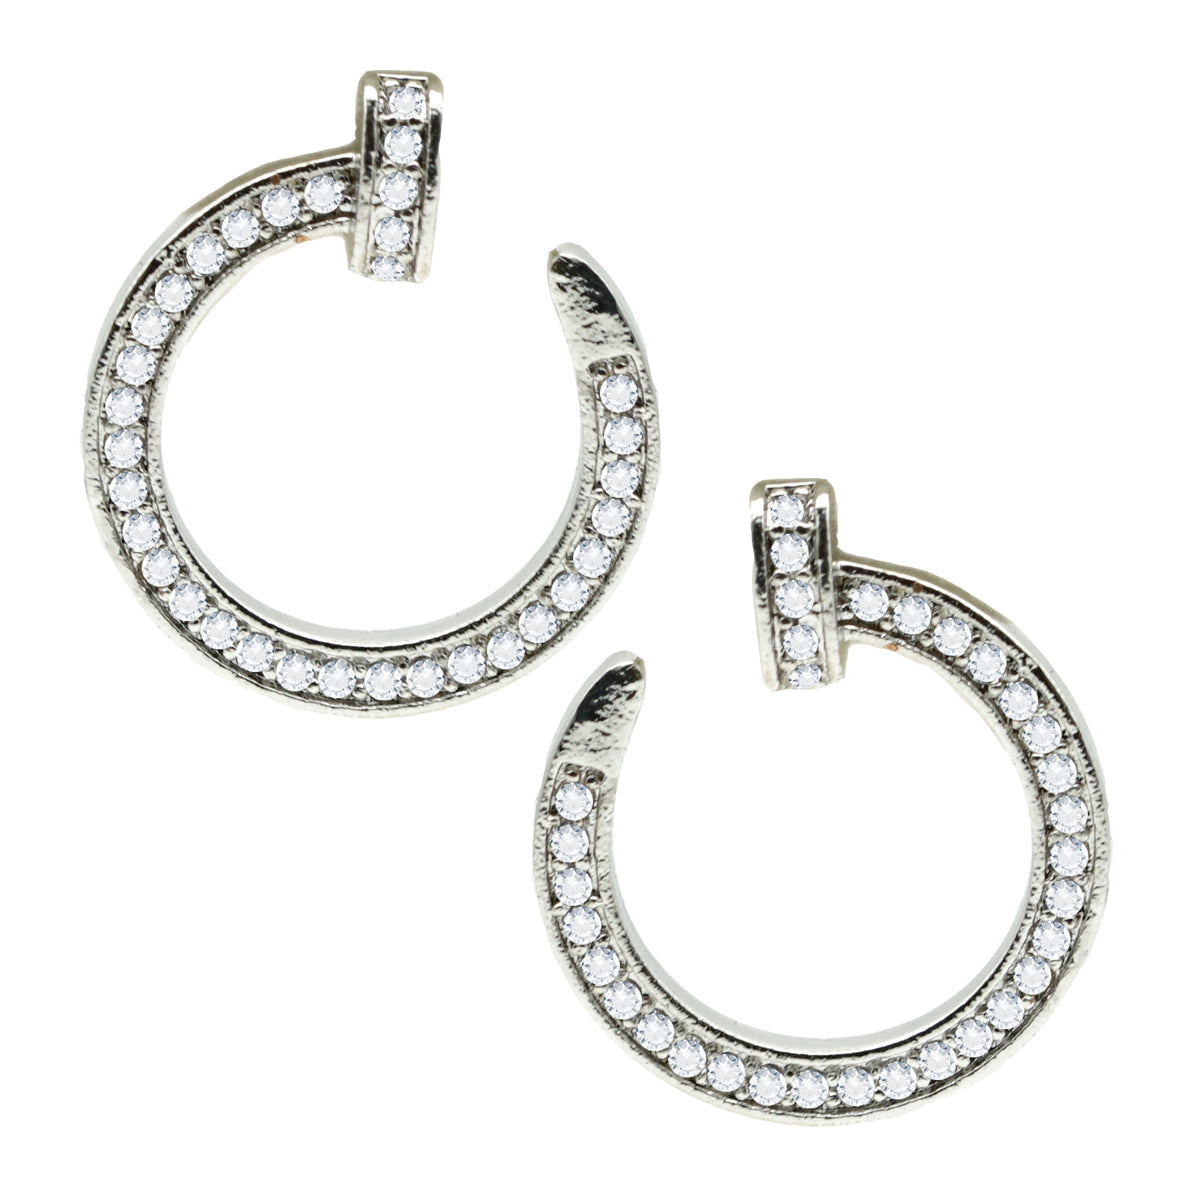 Tiffany Round Nail Stud Earrings - Kiyara